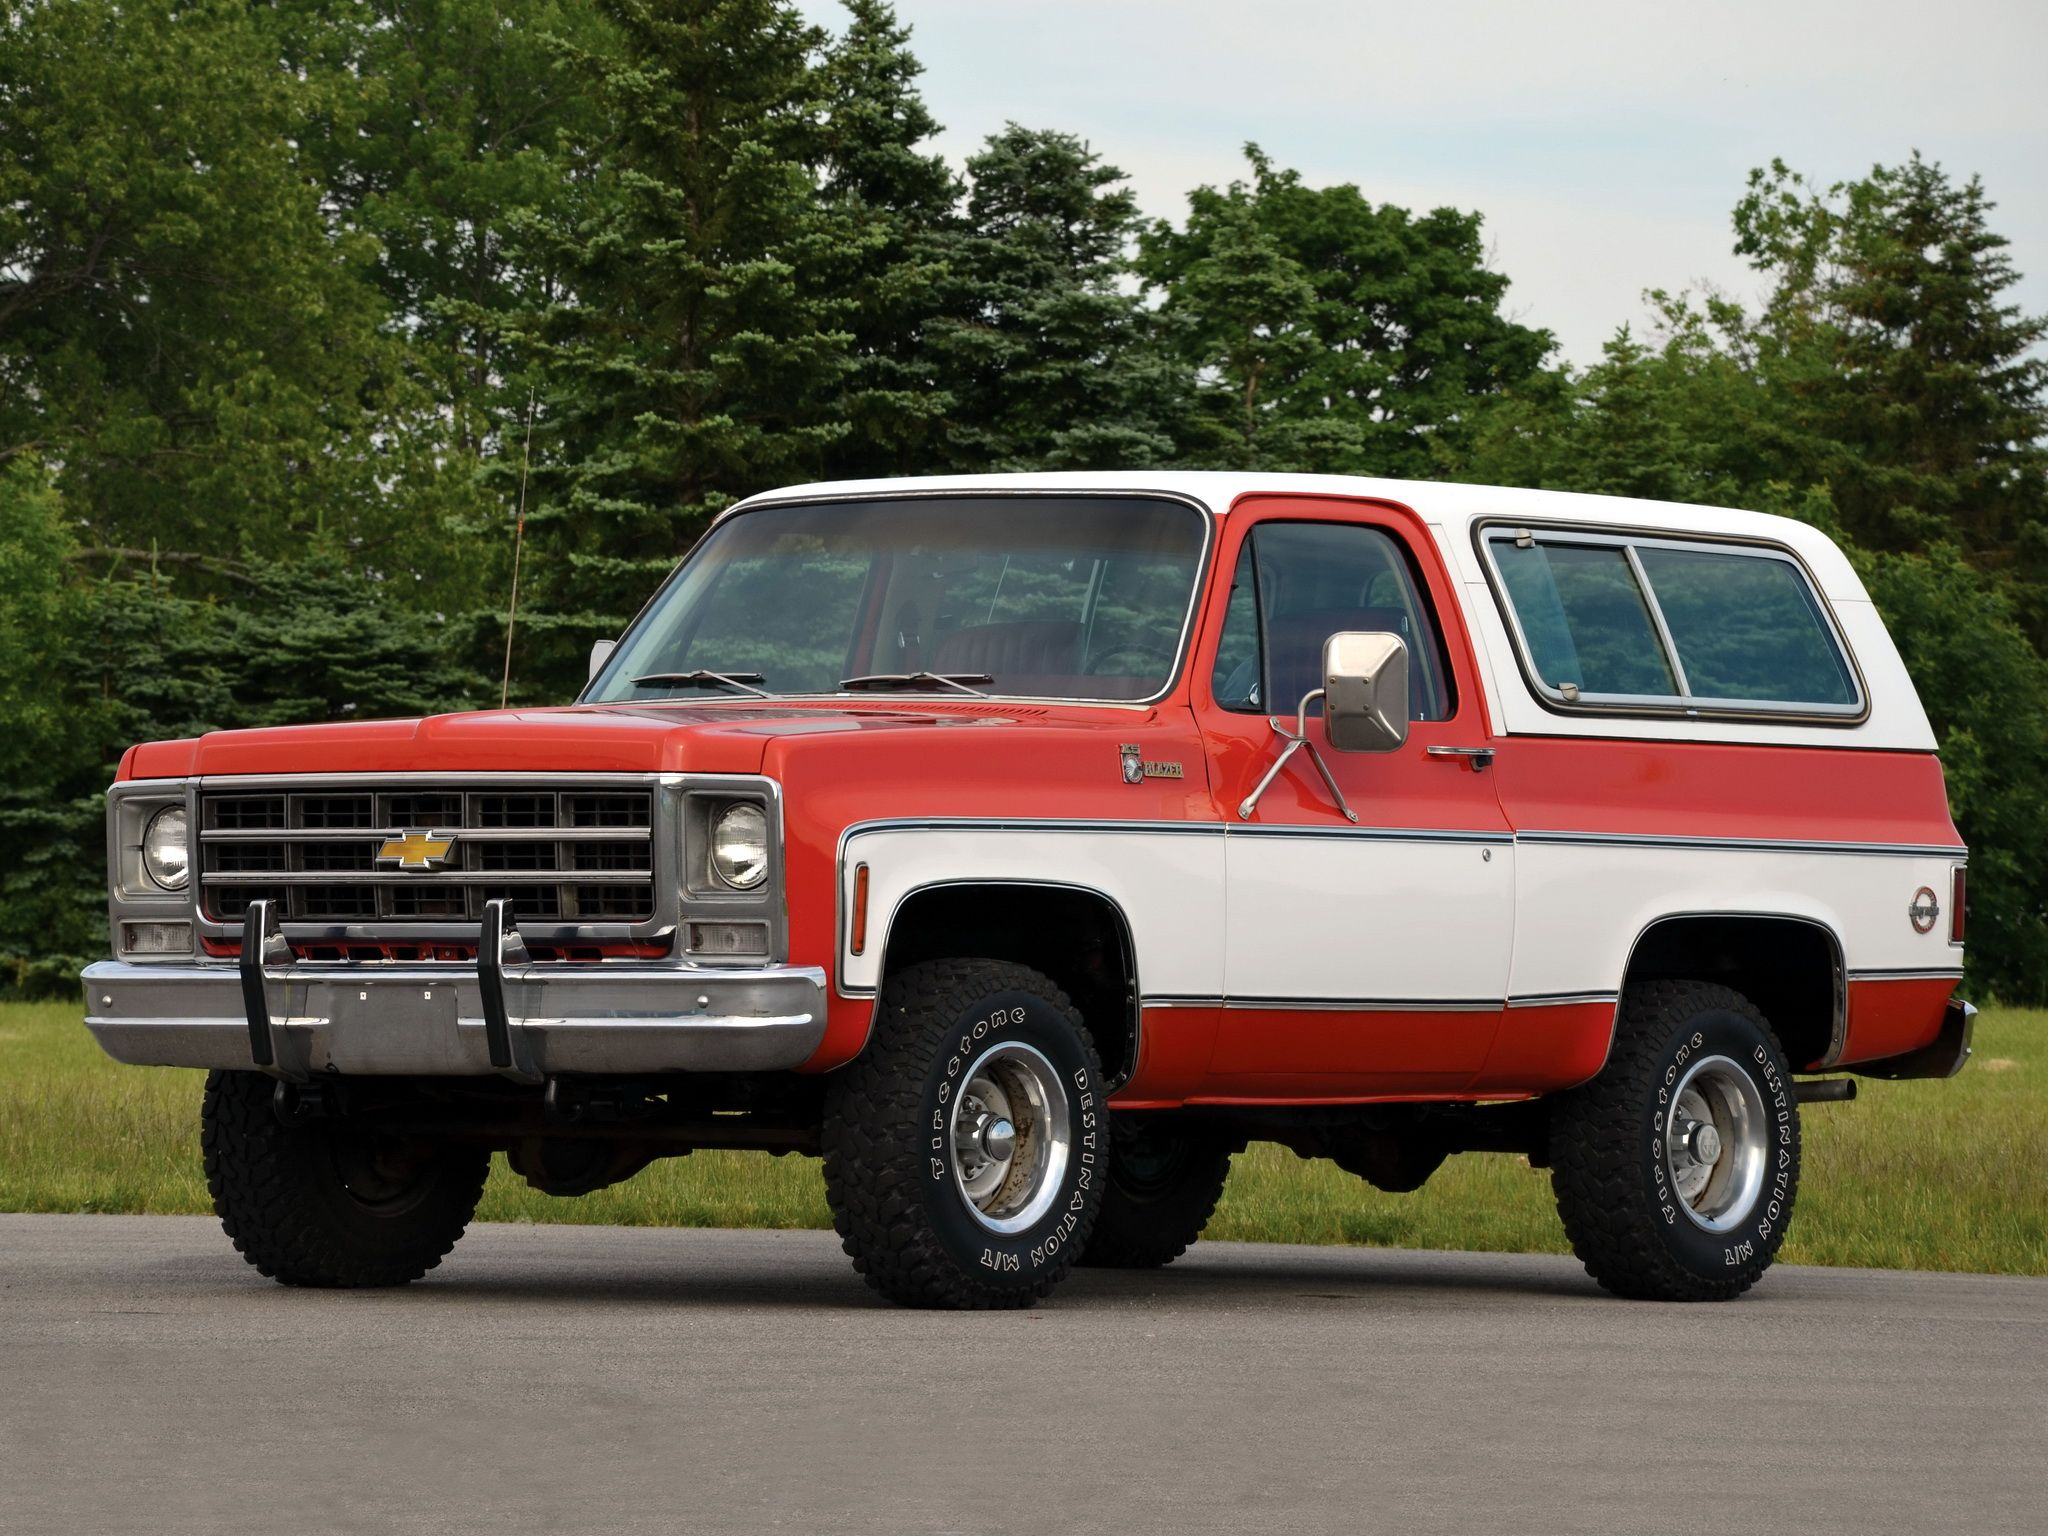 Blazer Squarebody Chevrolet K5 On Instagram Chevy Trucks Chevy Vehicles Classic Trucks